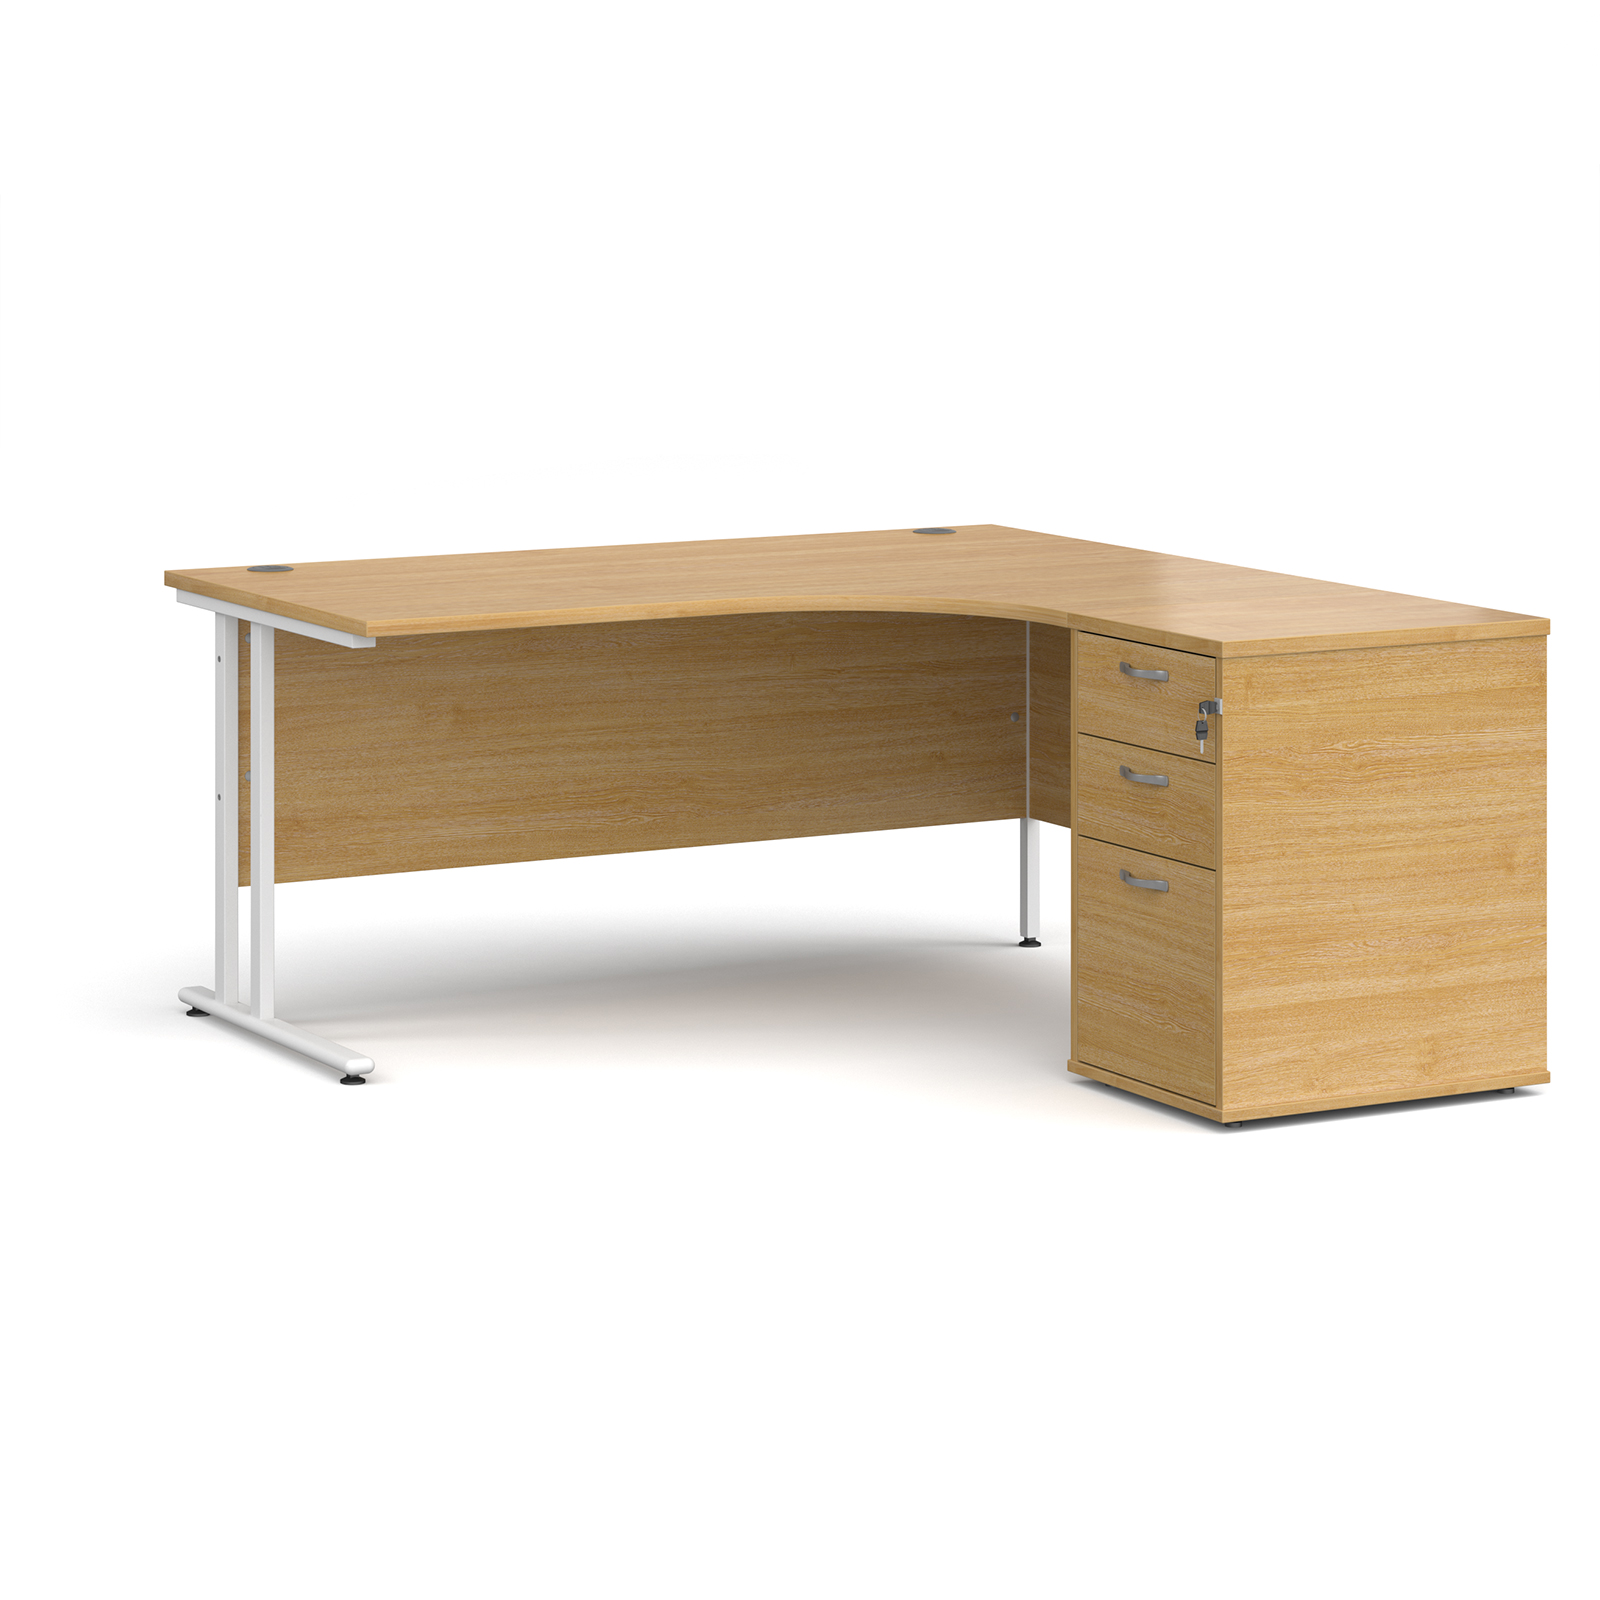 Right Handed Maestro 25 right hand ergonomic desk 1600mm with white cantilever frame and desk high pedestal - oak